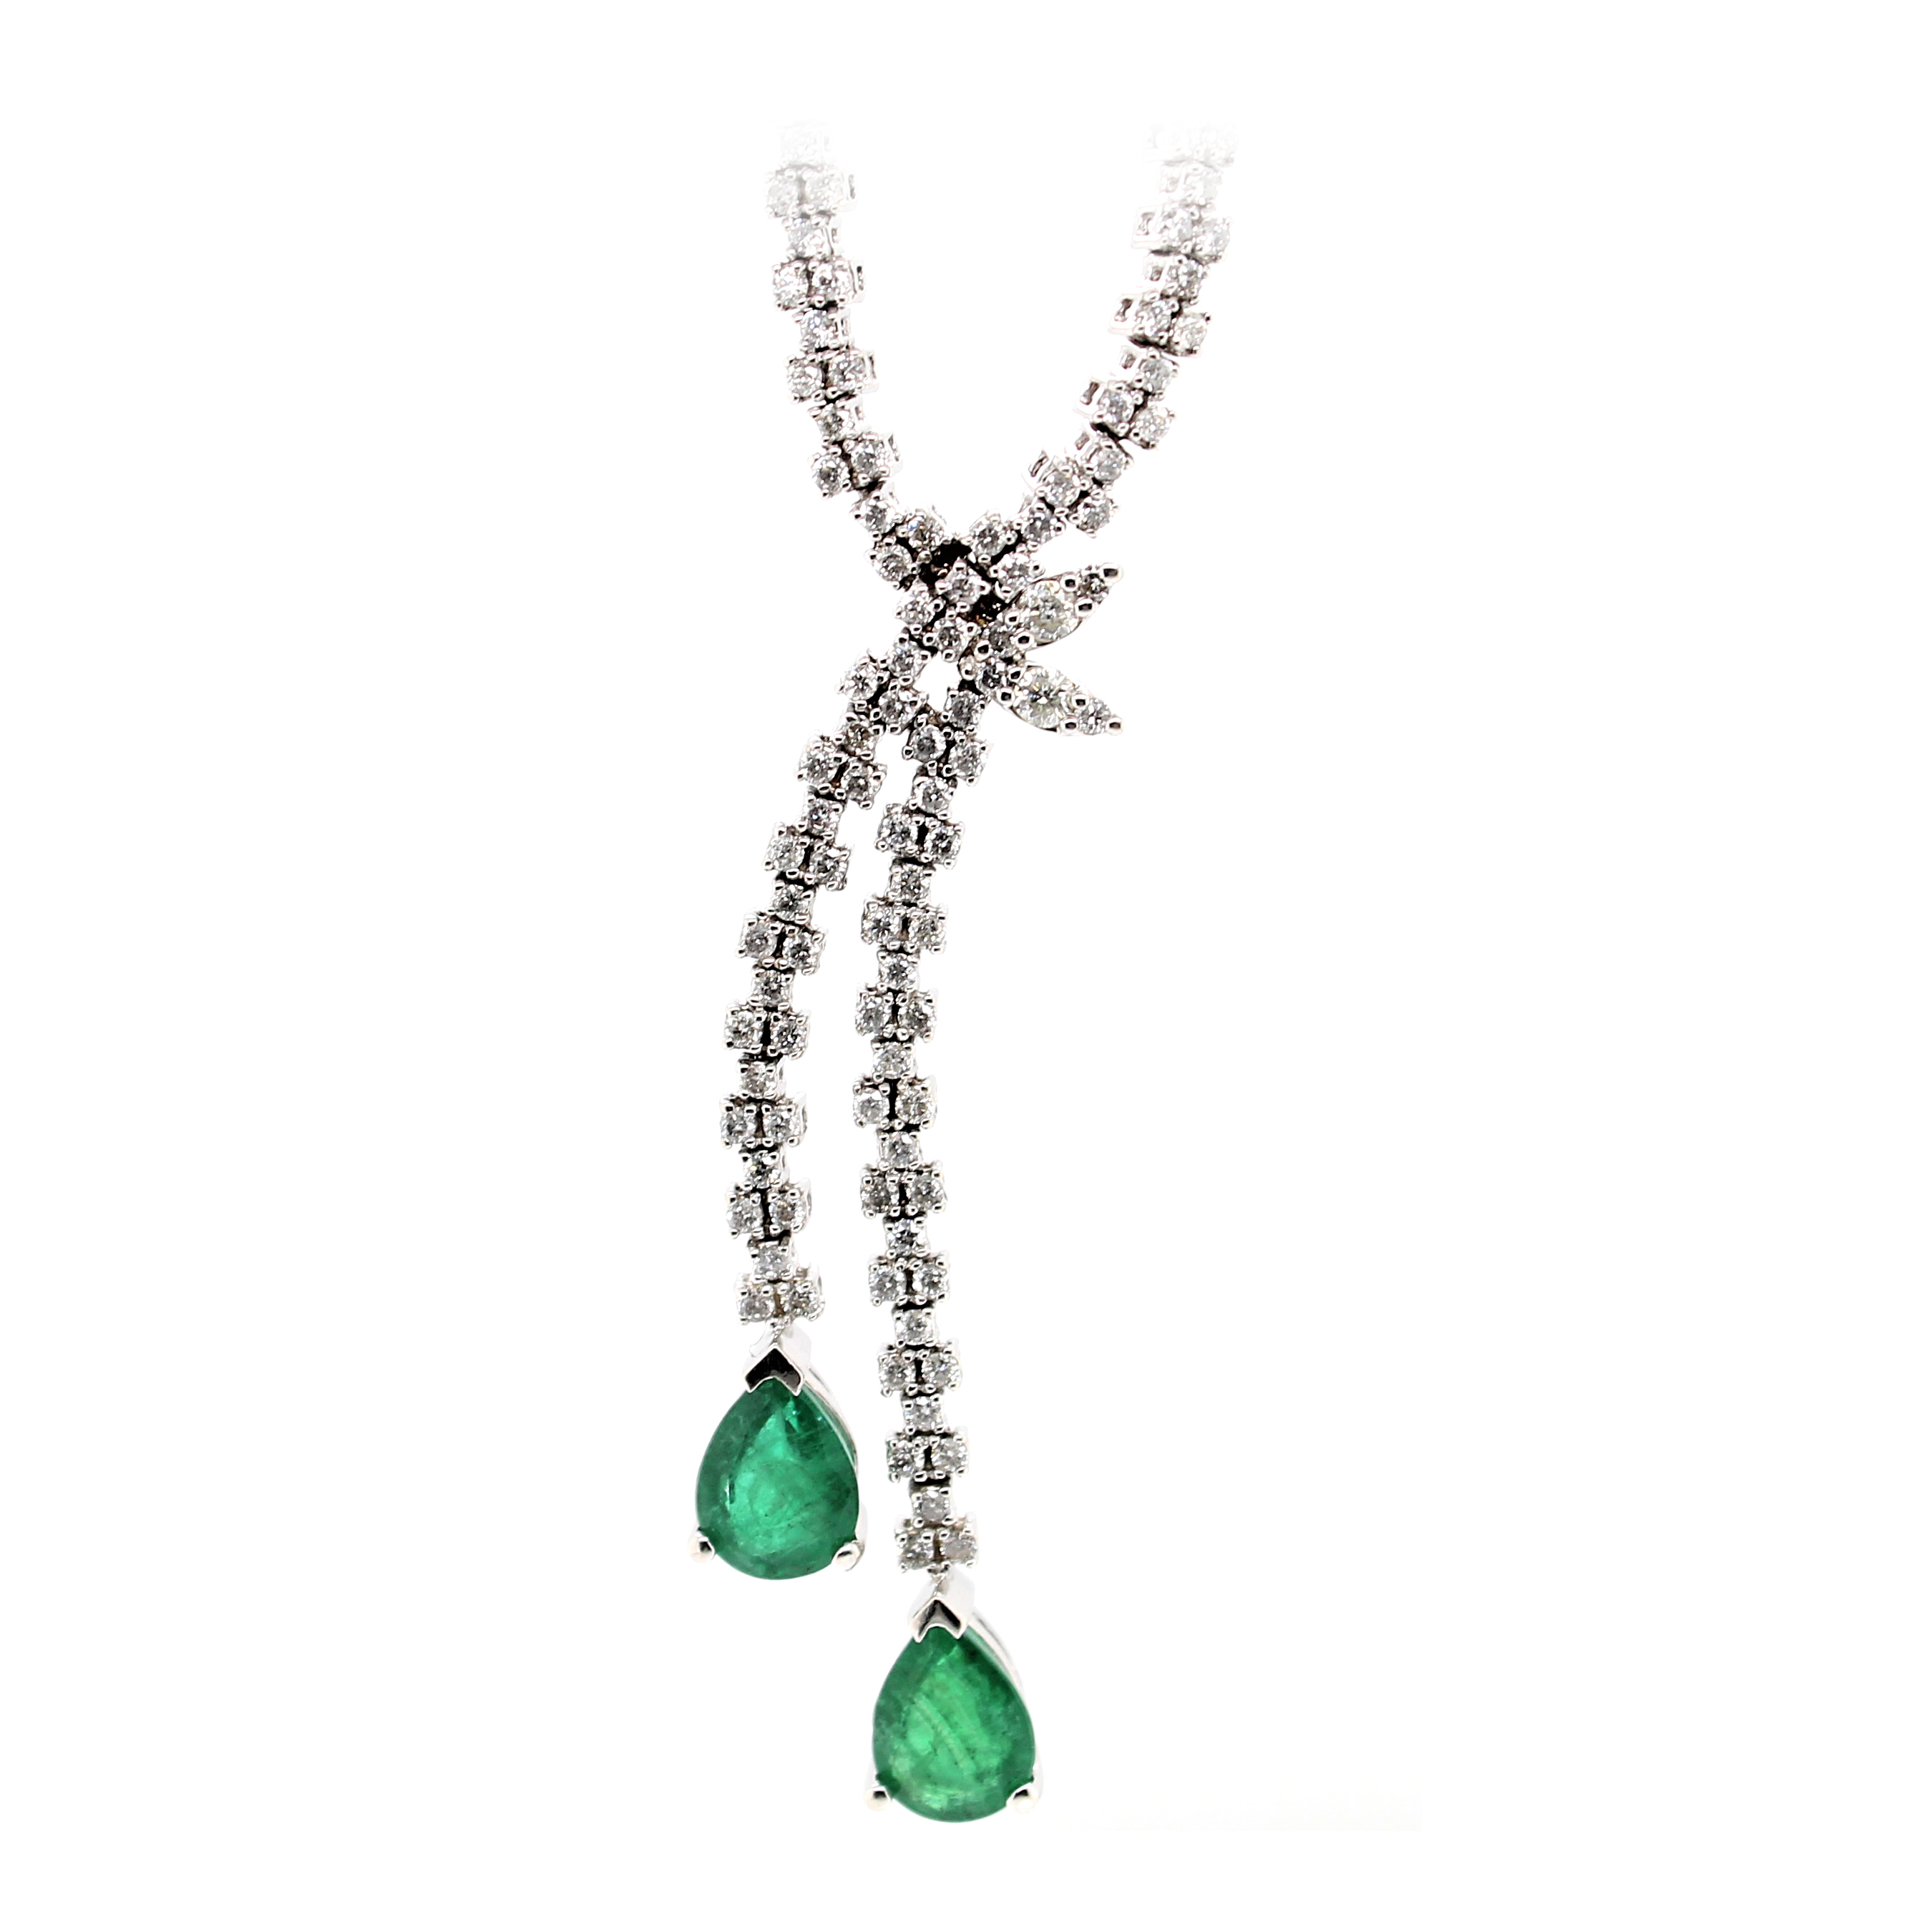 14 Karat White Gold Emerald and Diamond Necklace